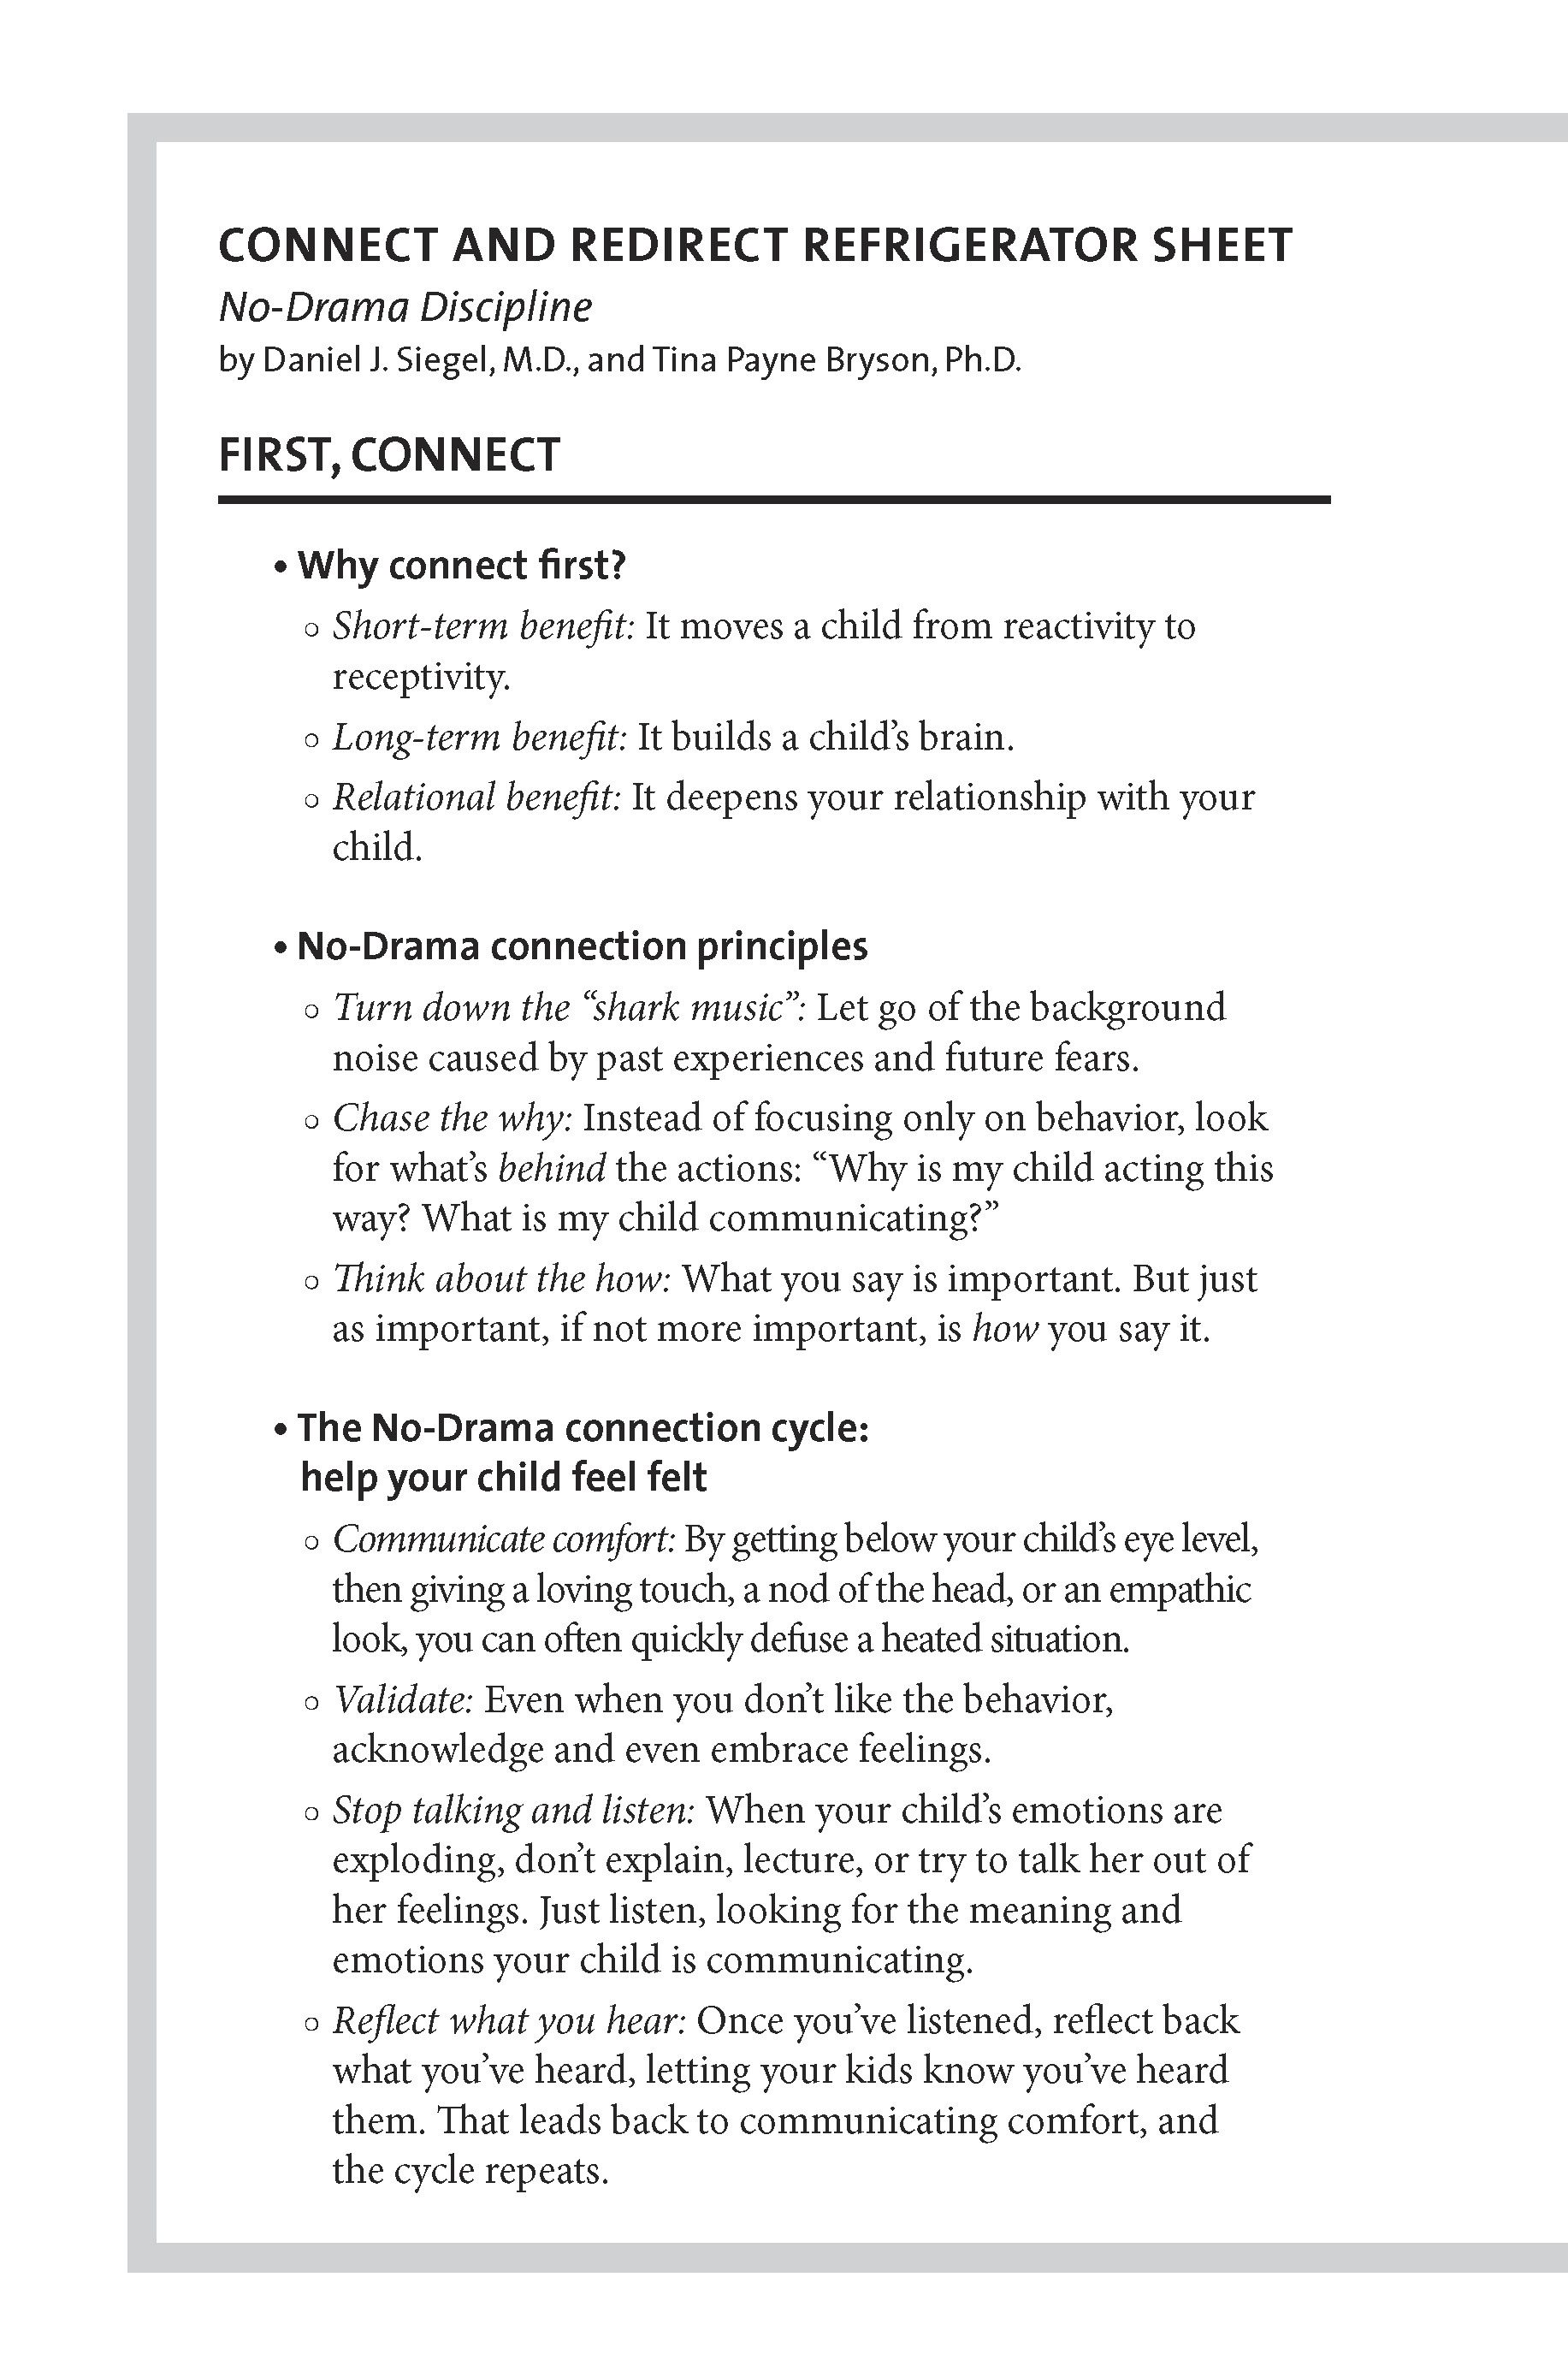 Extended Ebook Content For No Drama Discipline Connect And Redirect Refrigerator Sheet